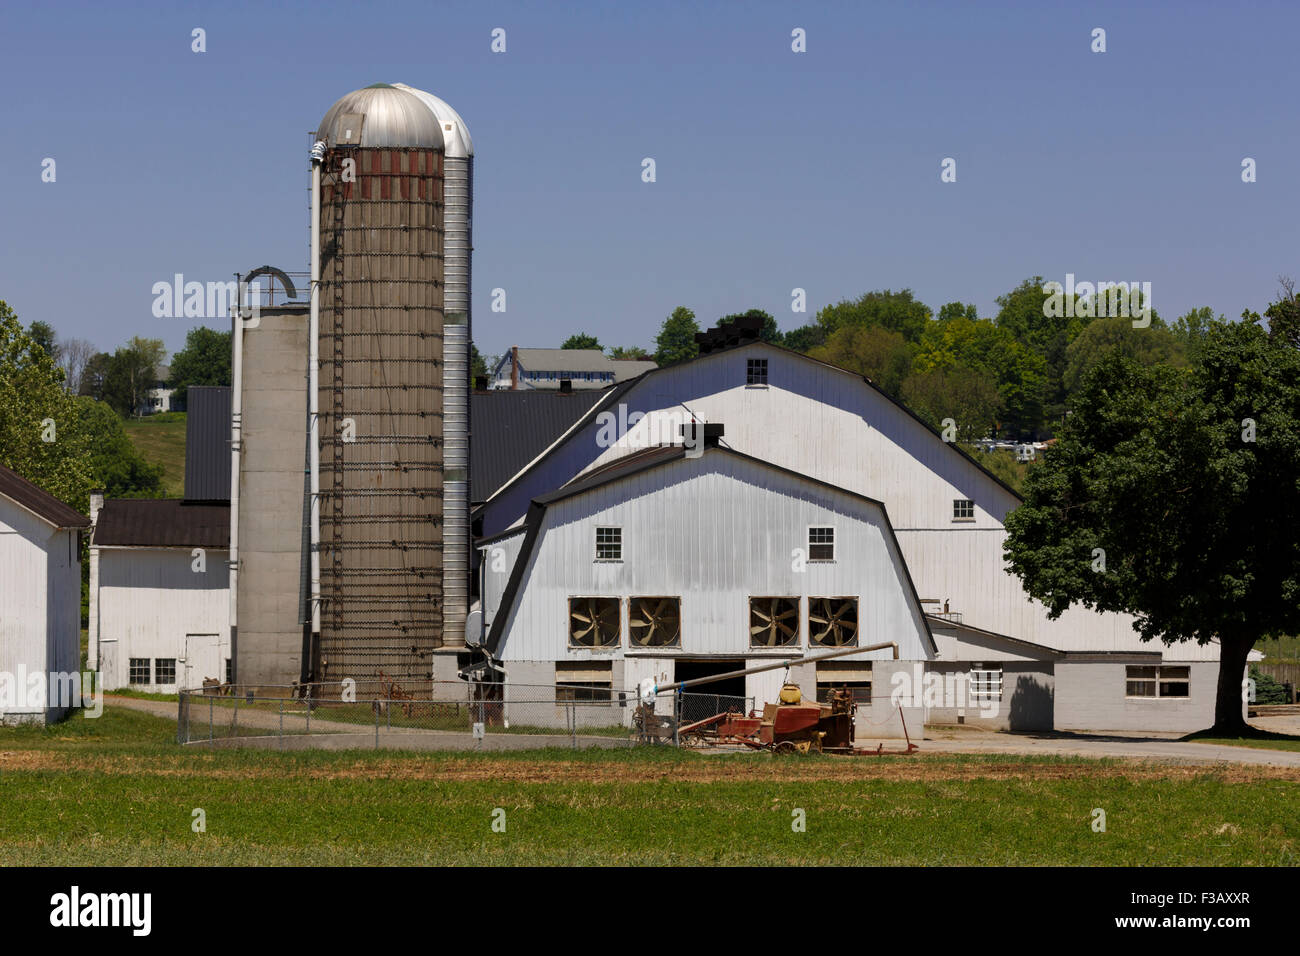 Lancaster County Pennsylvania Amish Farm Silo And Buildings And Equipment